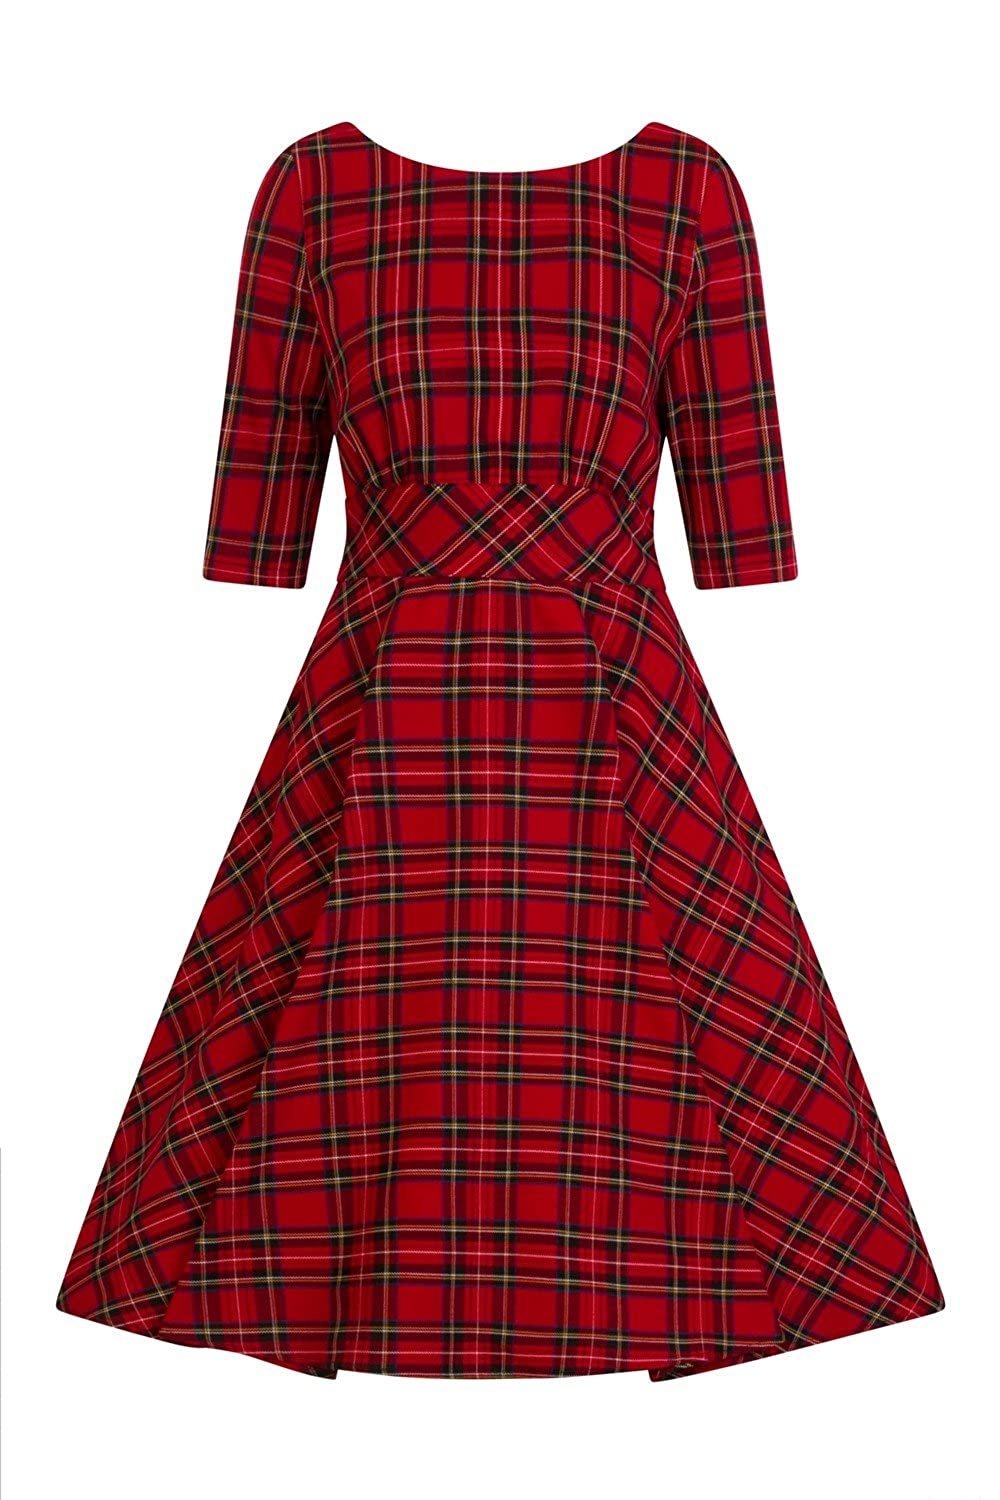 1950s Swing Dresses | 50s Swing Dress Hell Bunny Irvine Tartan 1950s Vintage Retro Dress XS-4XL $72.99 AT vintagedancer.com